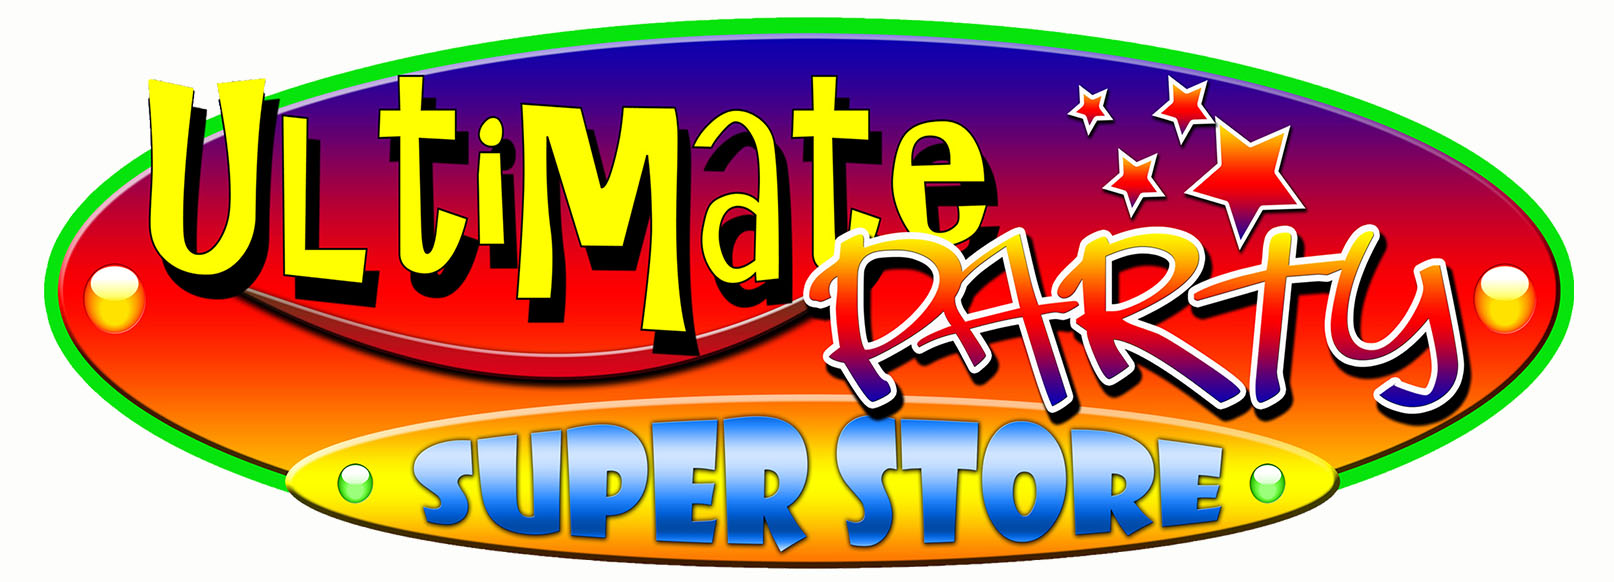 Ultimate Party Superstore Logo.jpg